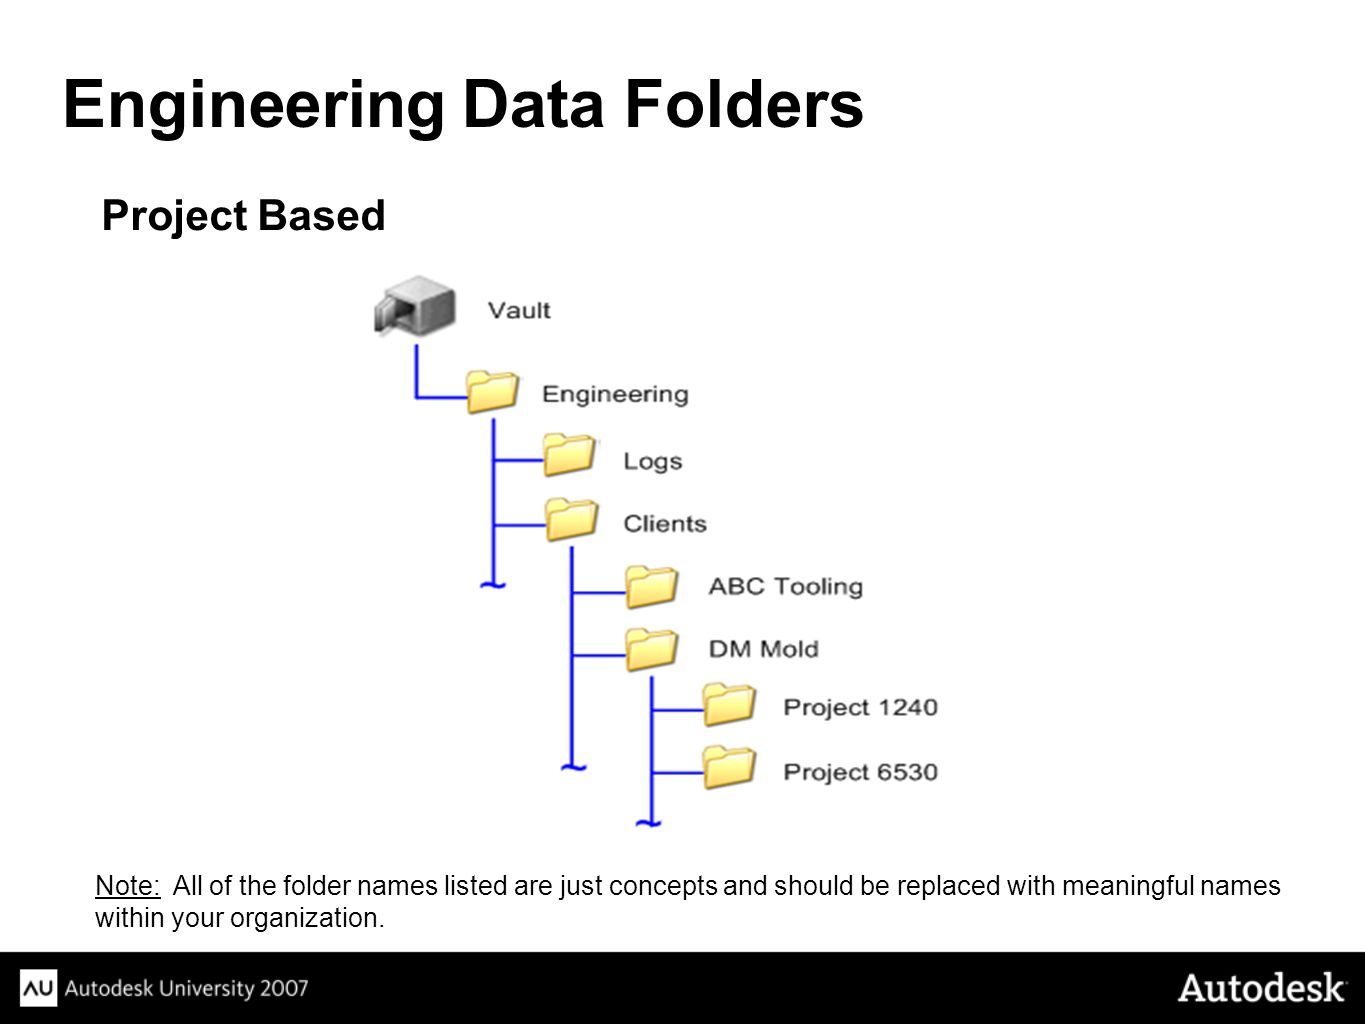 Engineering Data Folders